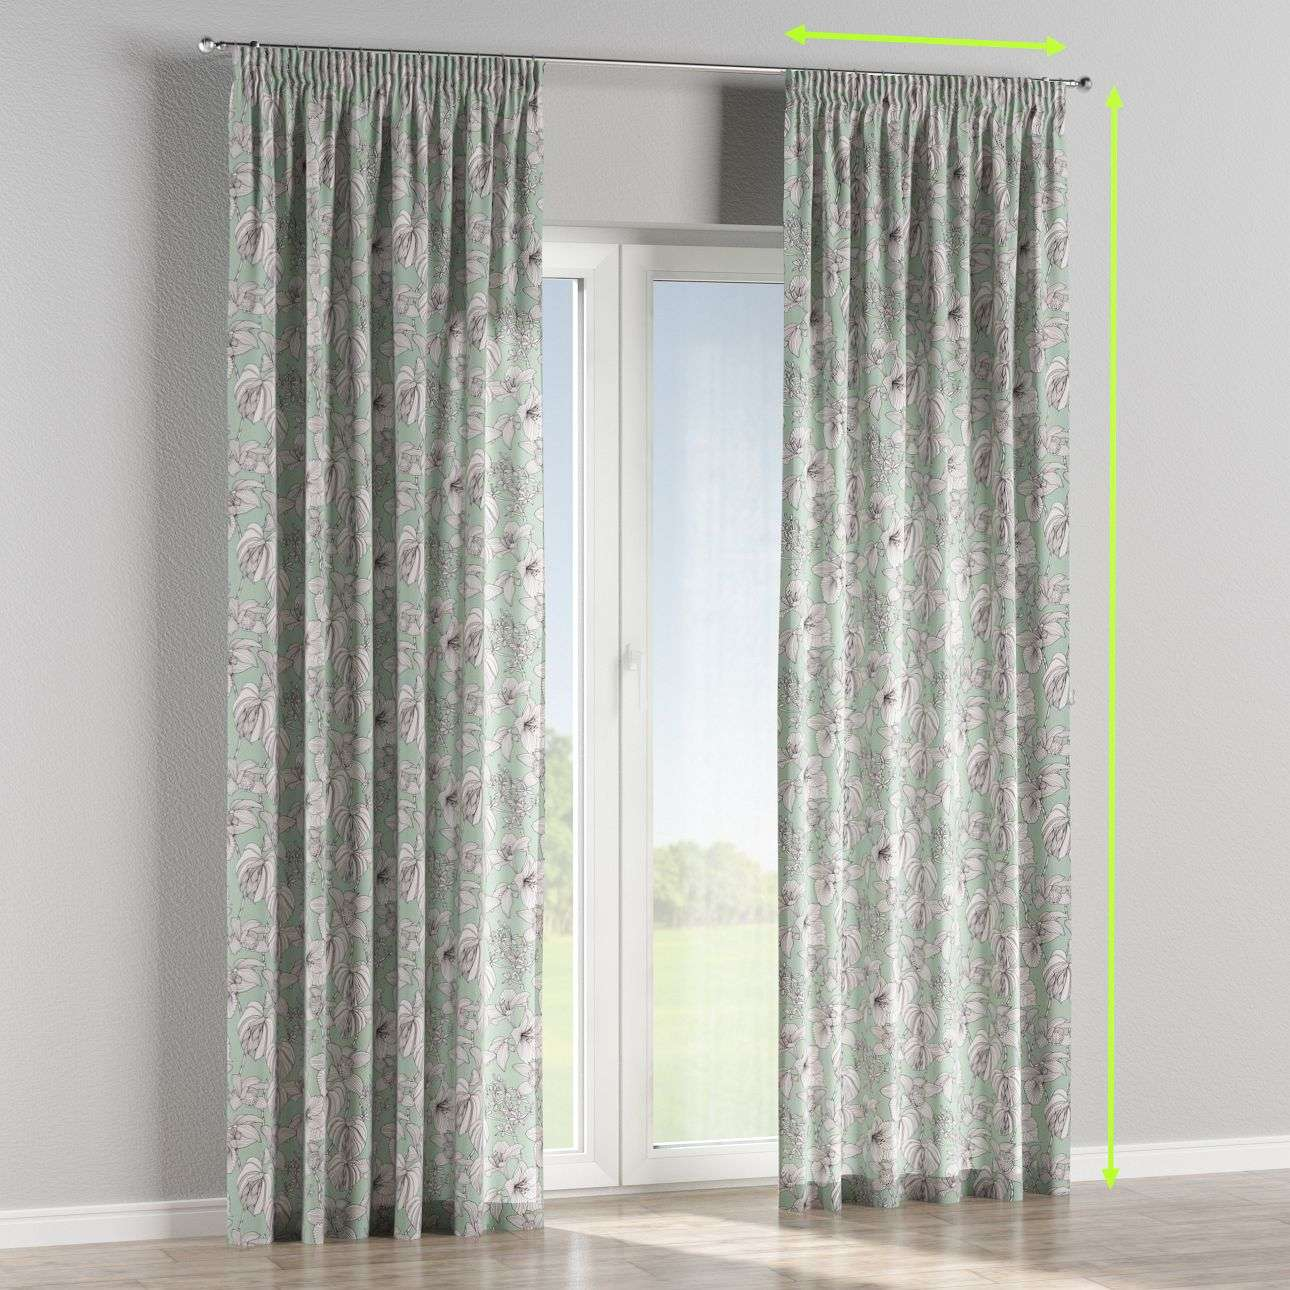 Pencil pleat lined curtains in collection Brooklyn, fabric: 137-76